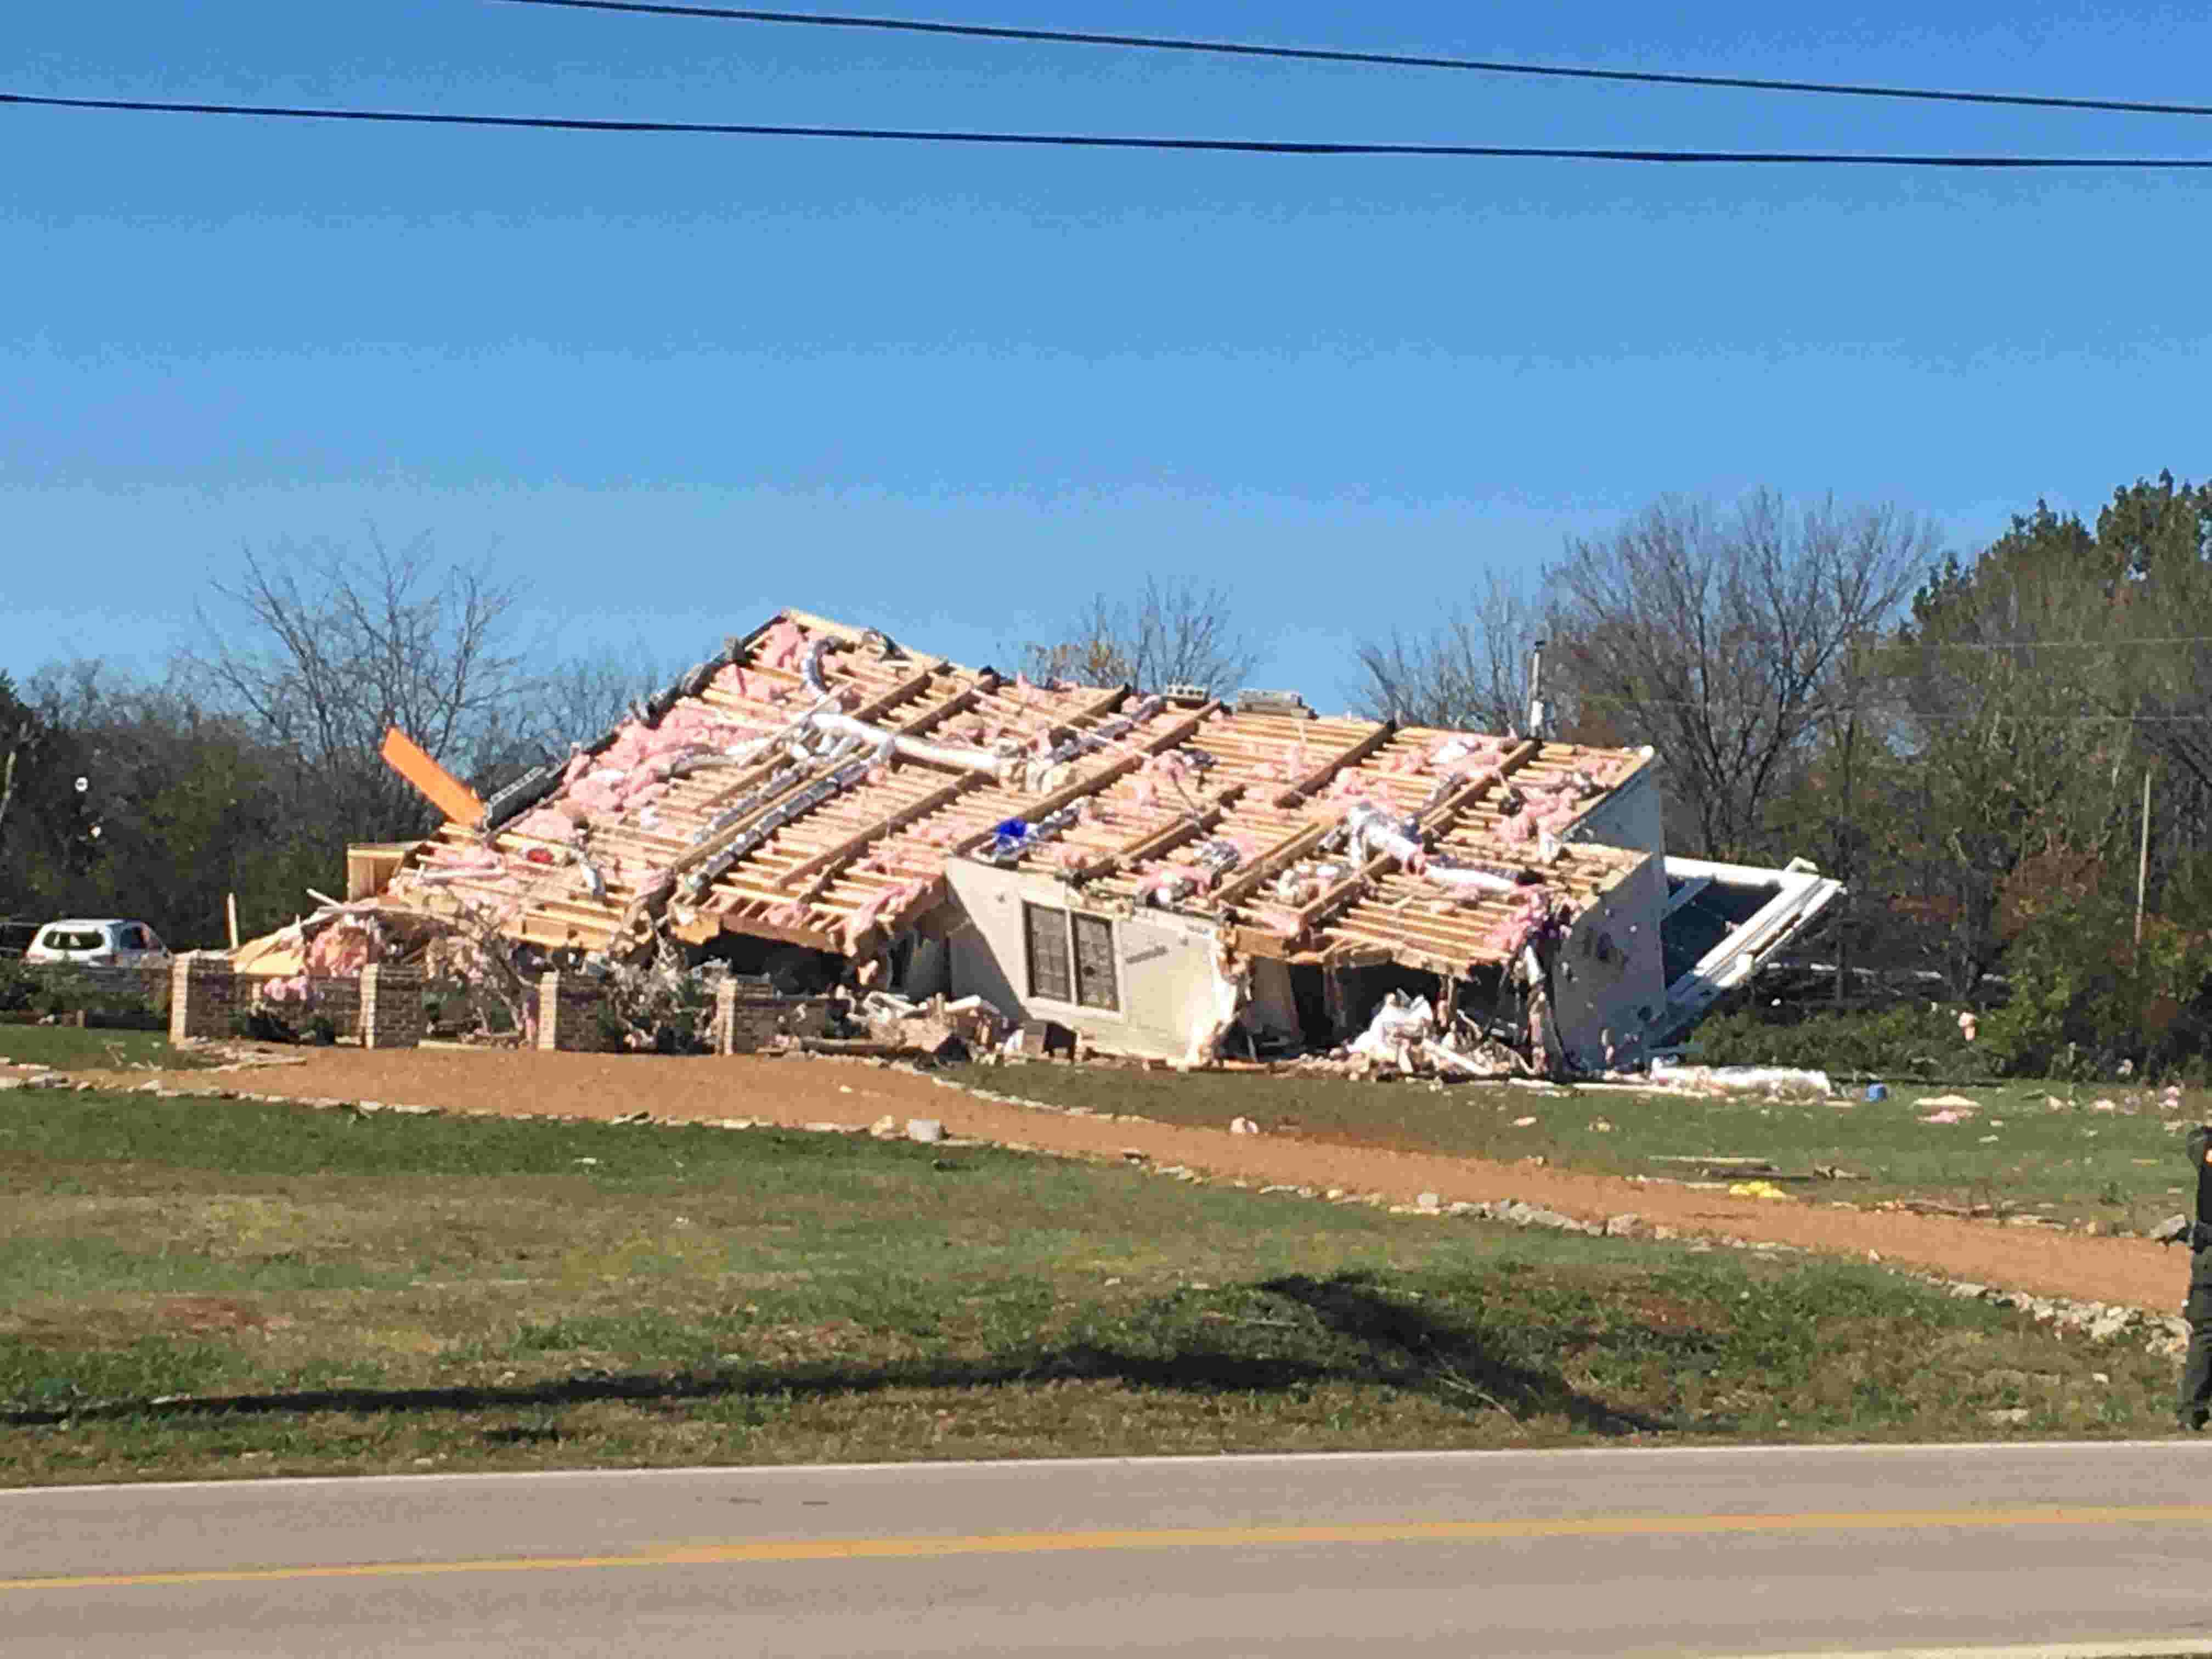 Awe Inspiring An Ef 2 Tornado Ripped Through Middle Tennessee Overnight Claiming At Least One Life Home Interior And Landscaping Oversignezvosmurscom